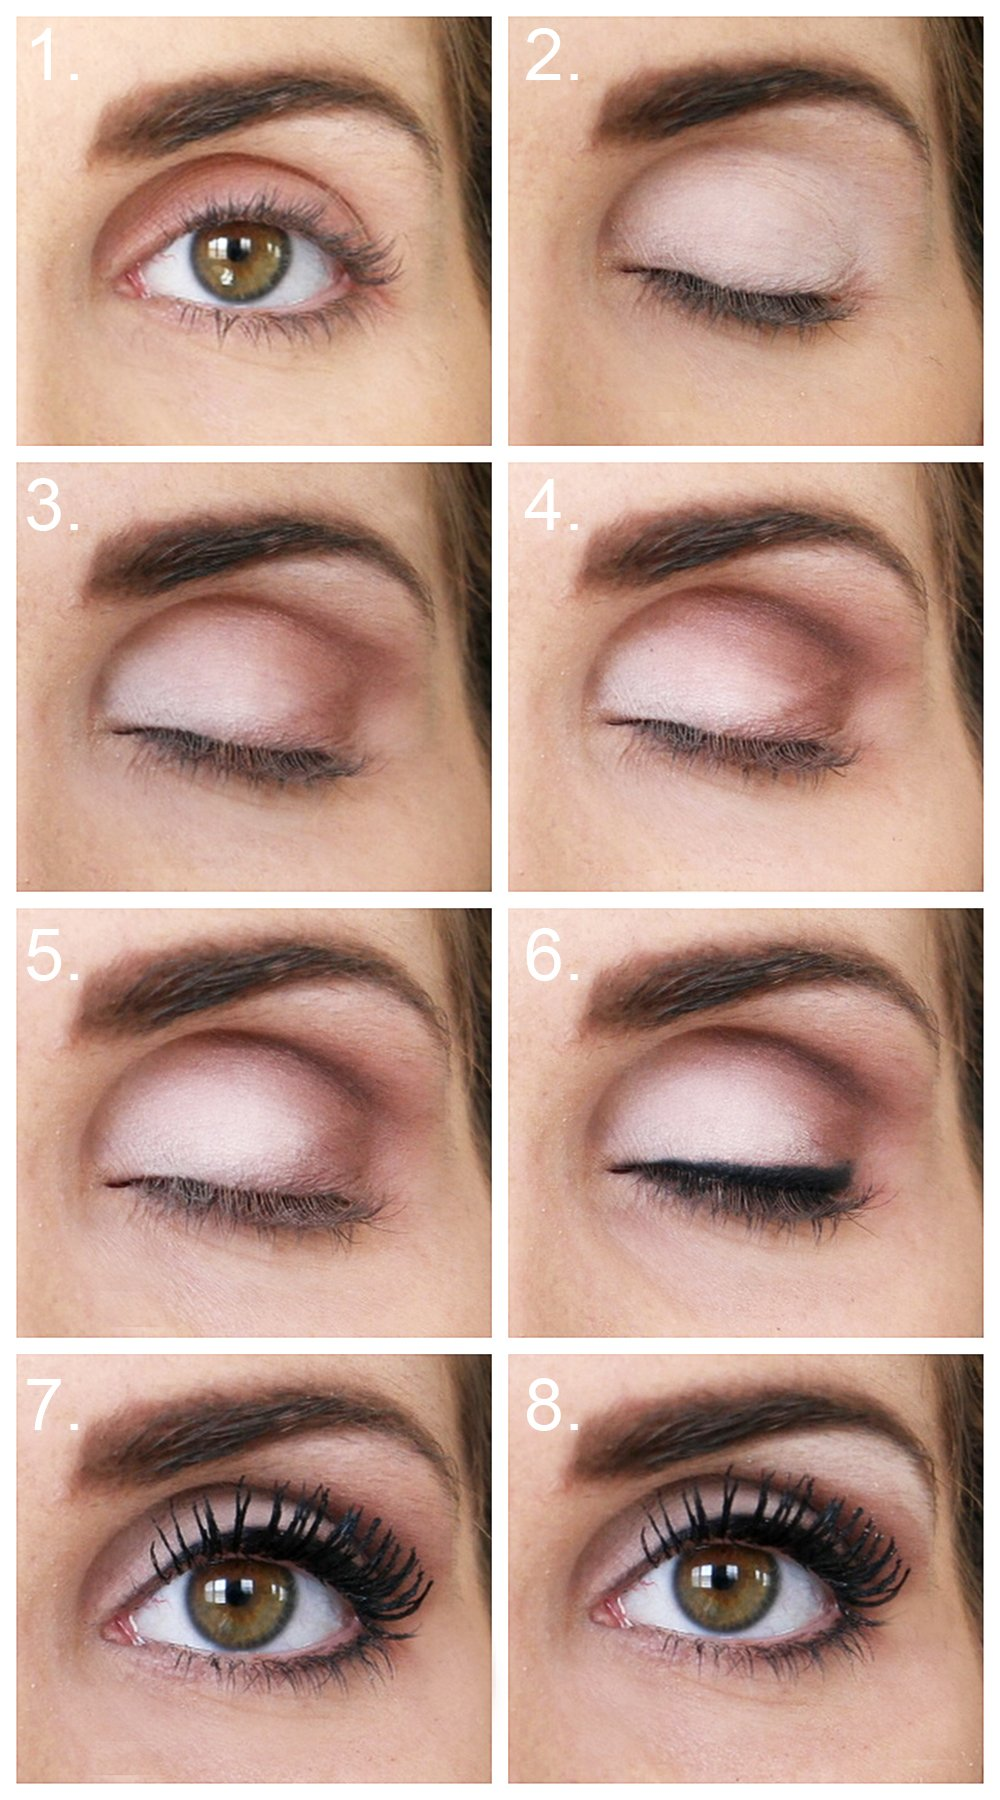 Warm Smokey Eye Makeup Tutorial Merricks Art Merricks Art